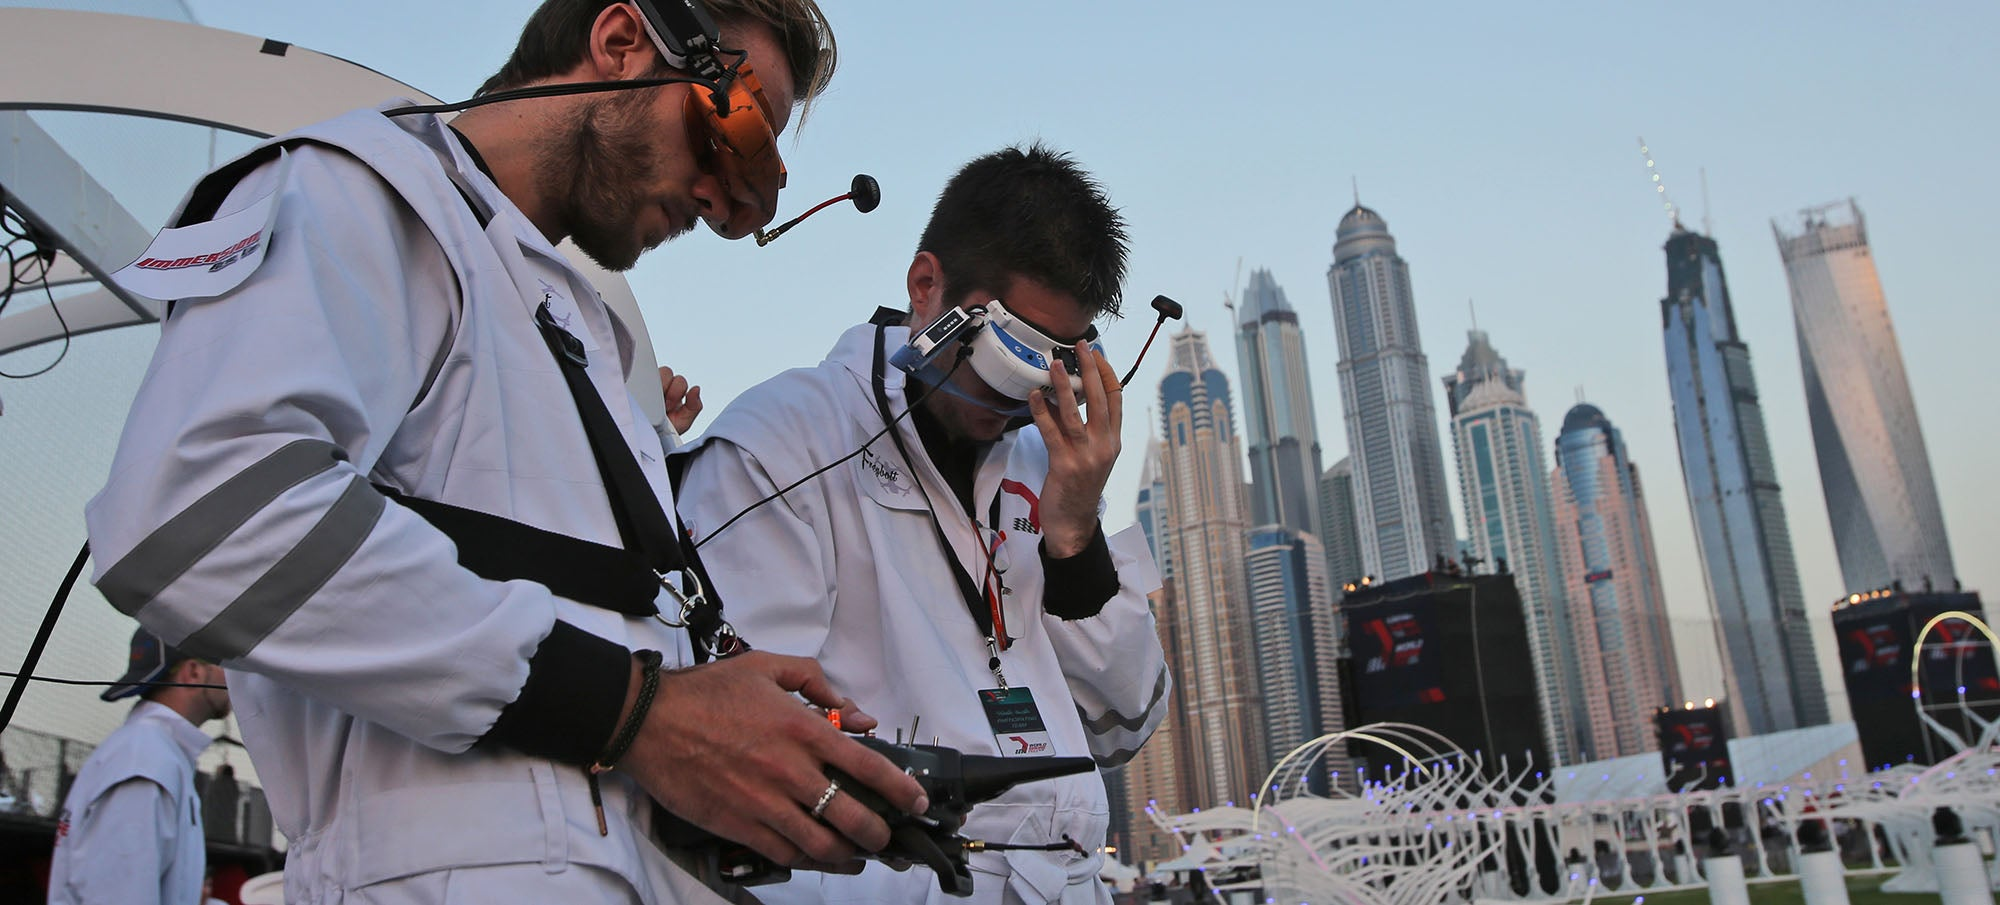 Teen Wins Dubai World Drone Prix as Country Announces 'World Future Sports' Games